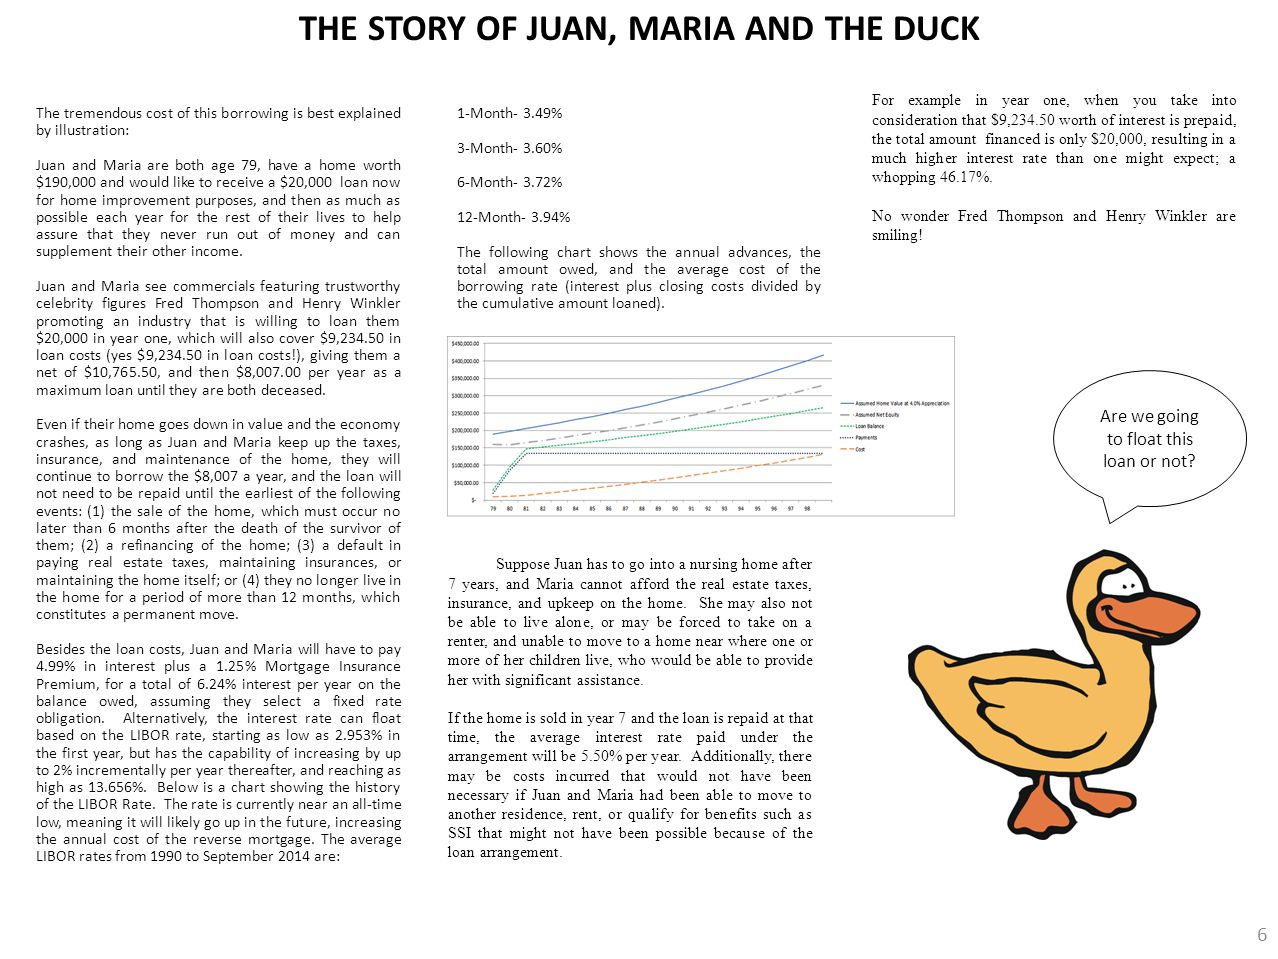 THE STORY OF JUAN, MARIA AND THE DUCK